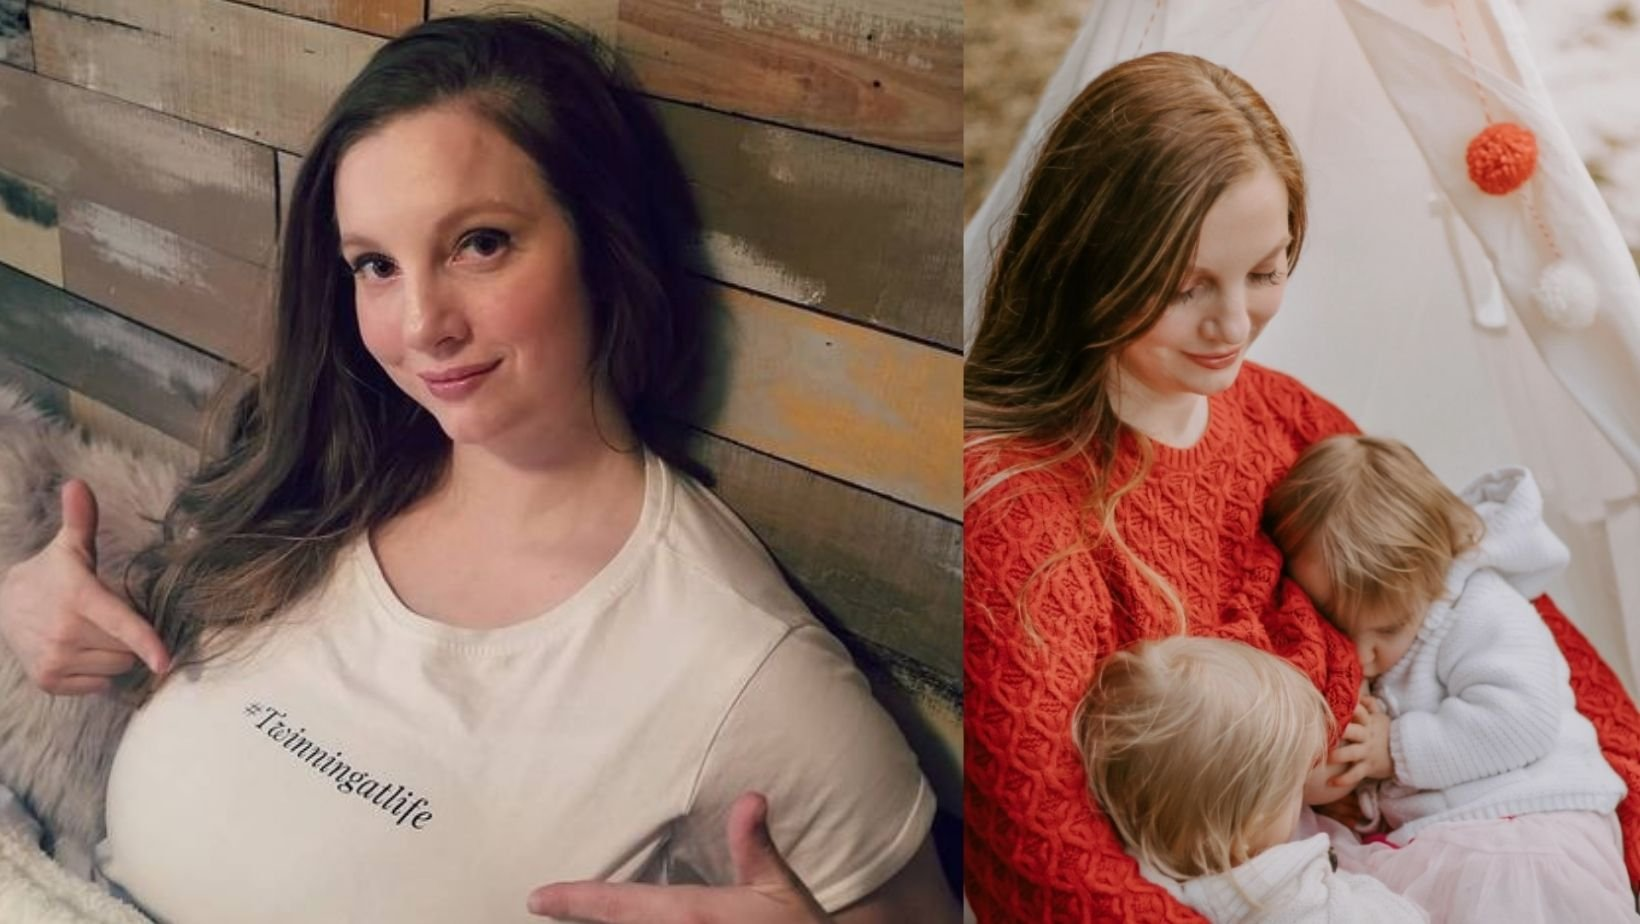 1 72.jpg?resize=1200,630 - Mom Of 7 Receives Tons Of Filthy Messages After Posting Breastfeeding Photos On Instagram